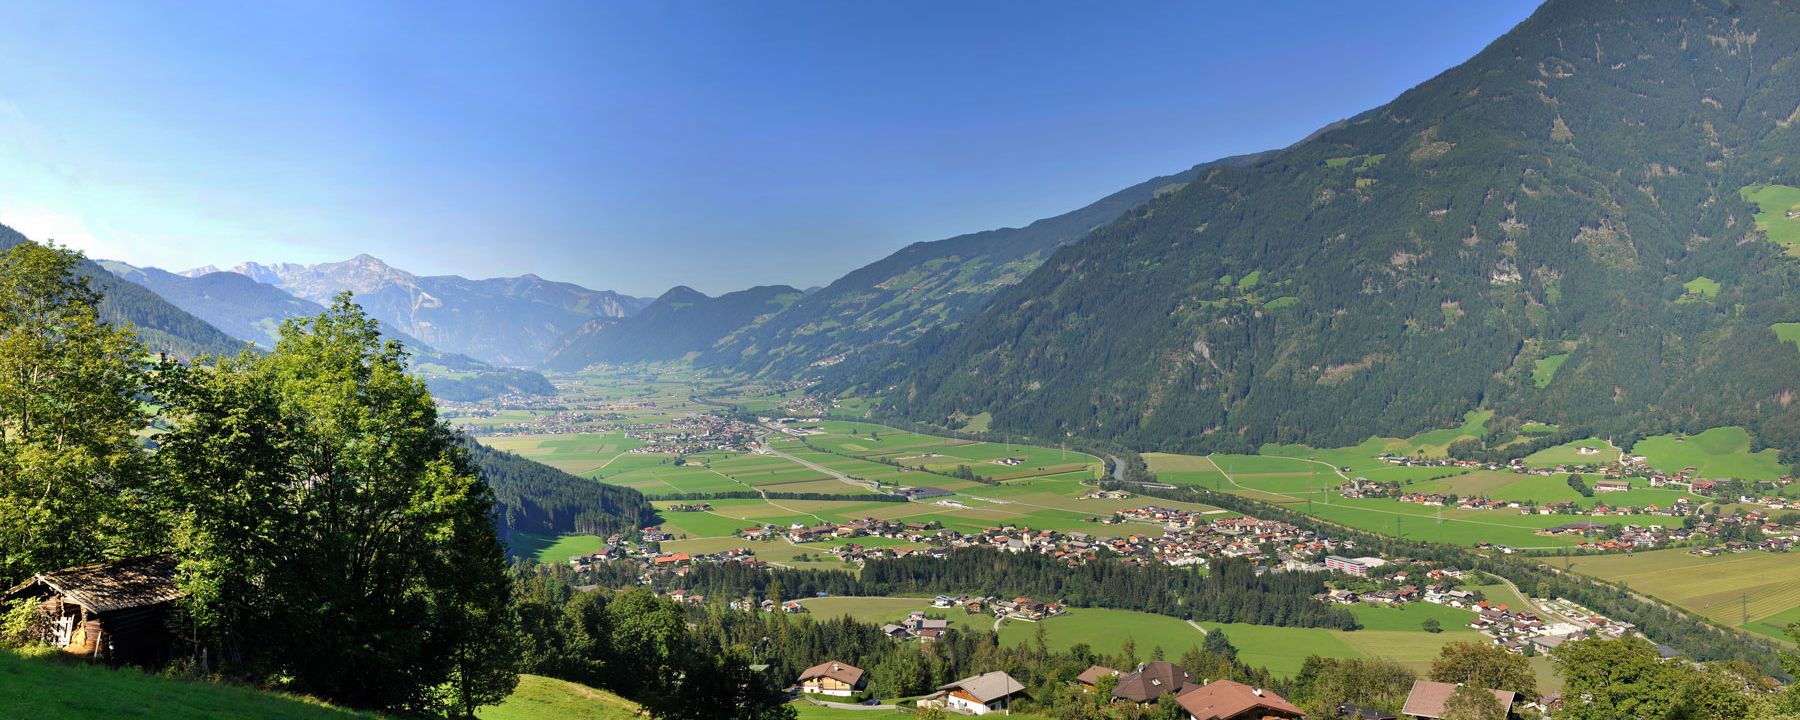 View of Fügen in the Zillertal